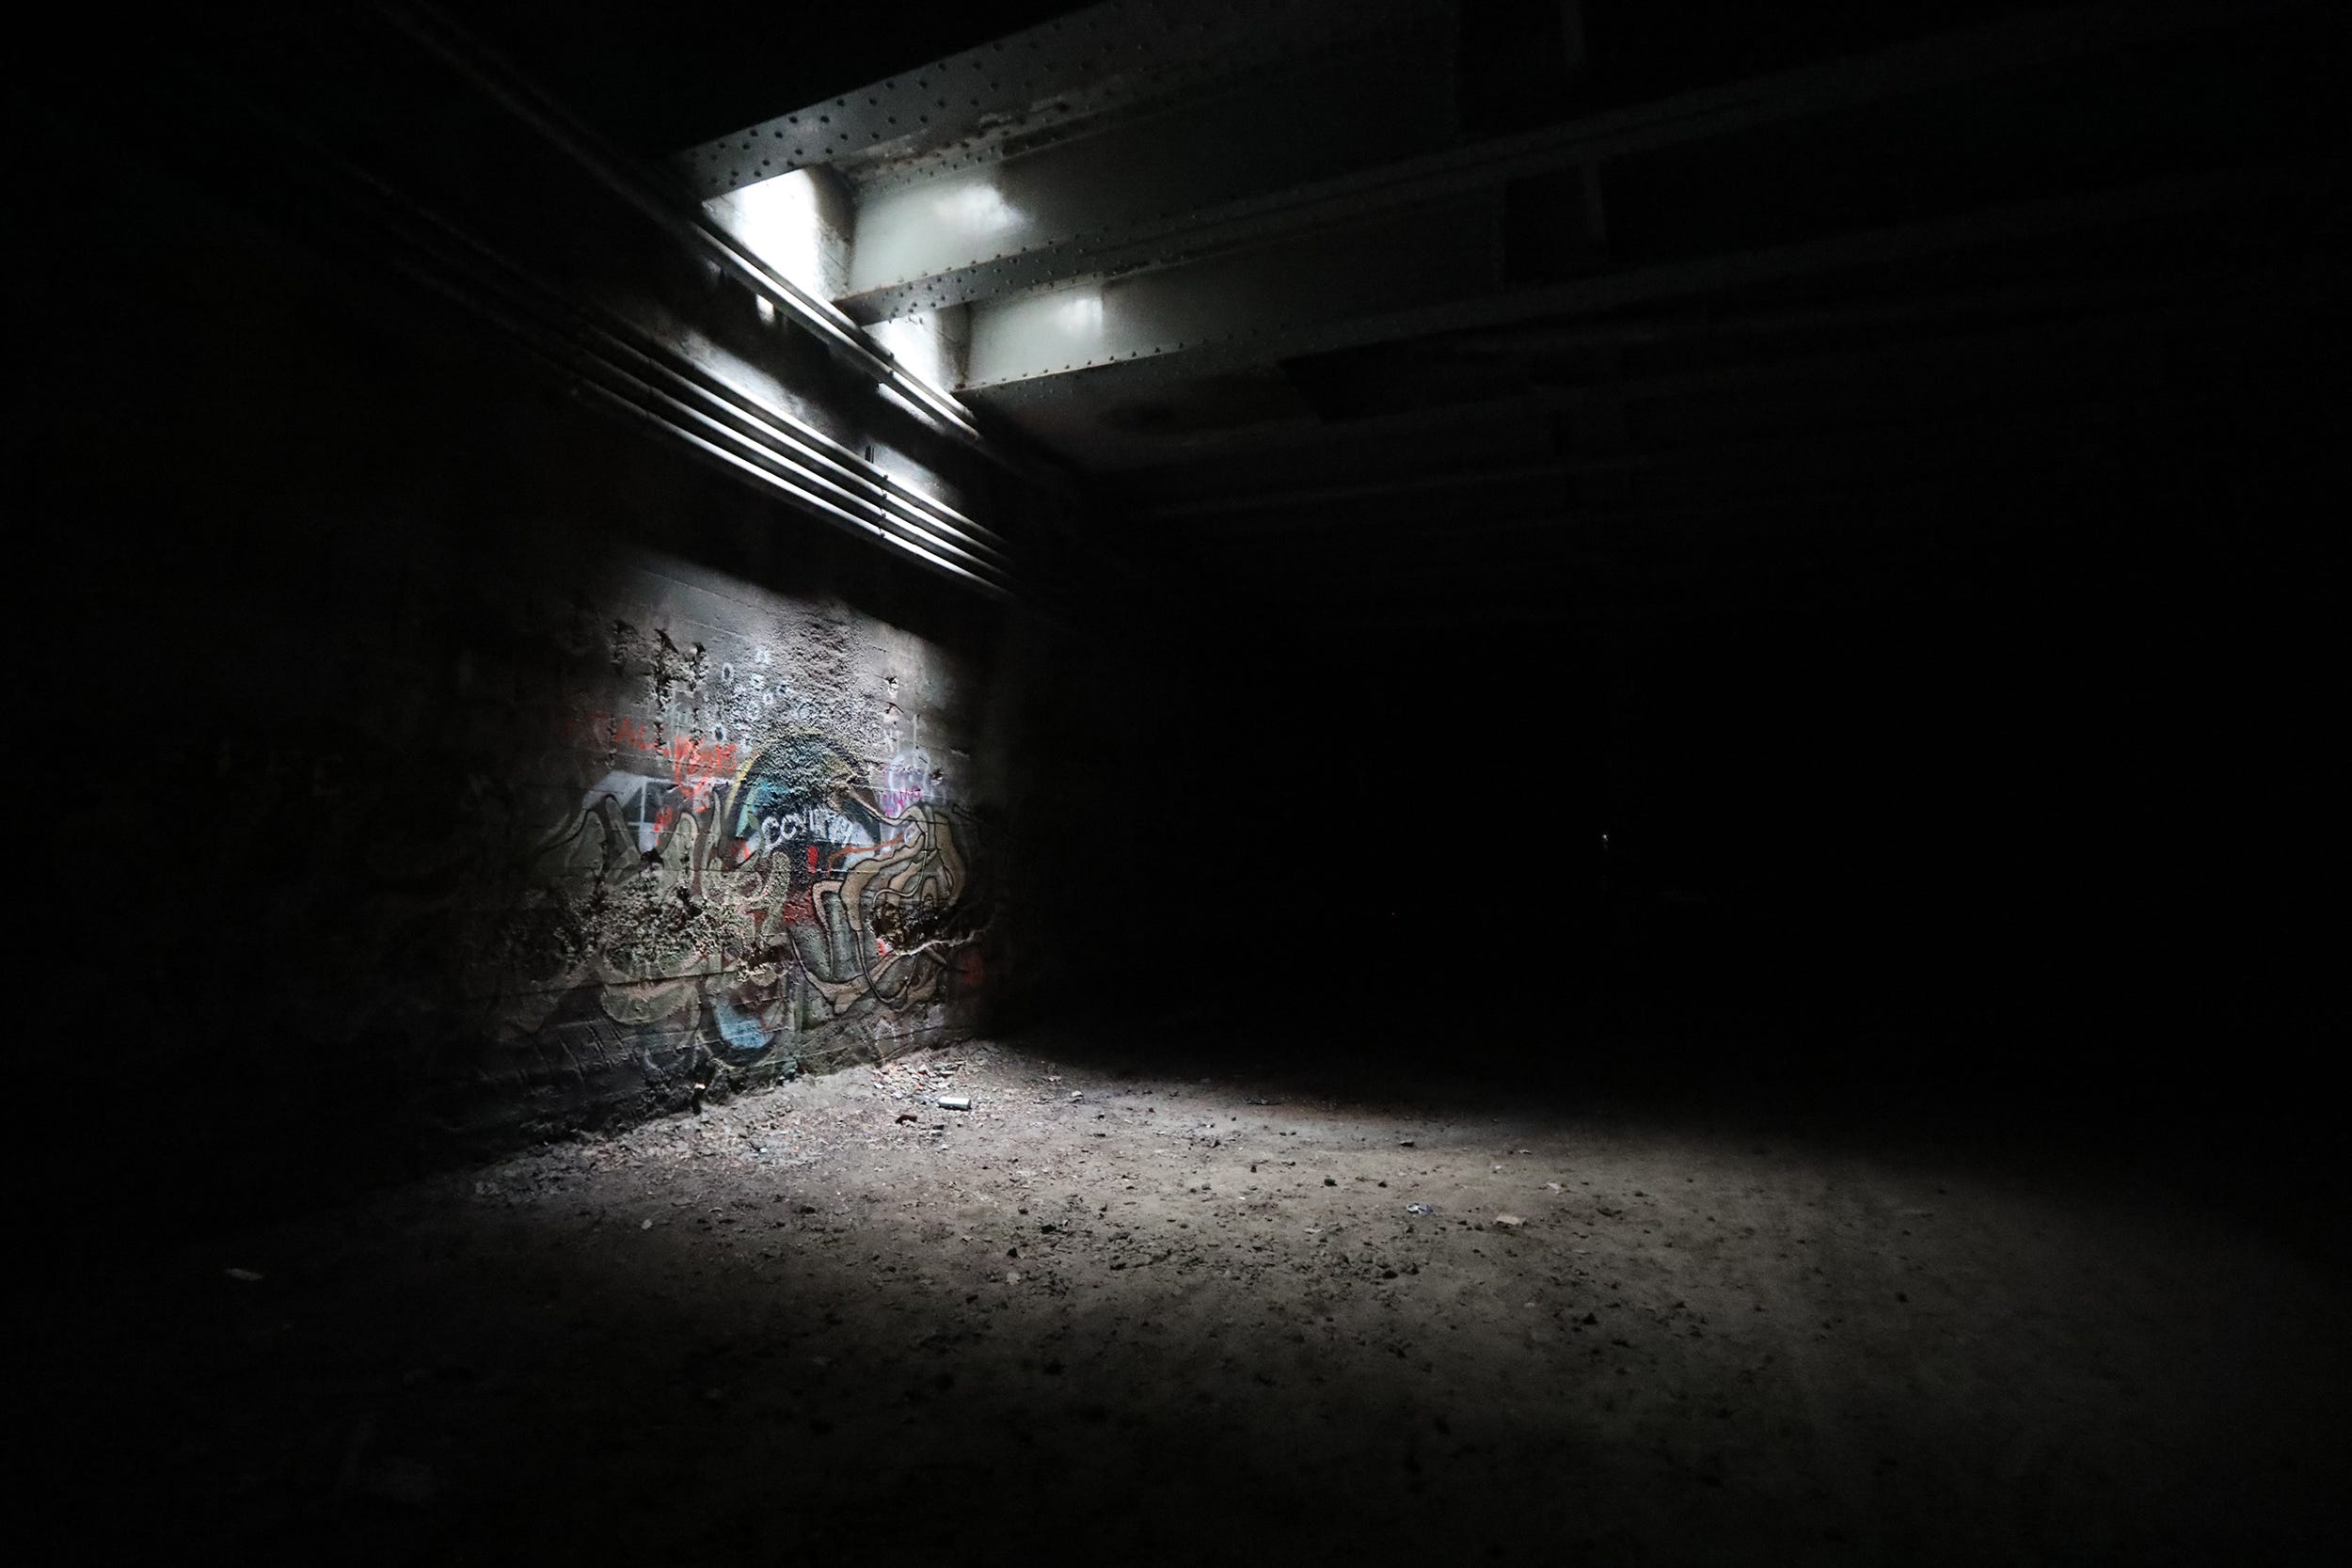 The subway was originally 9 miles long.  Today, graffiti artists use the former subway tunnel in downtown Rochester as their canvas.